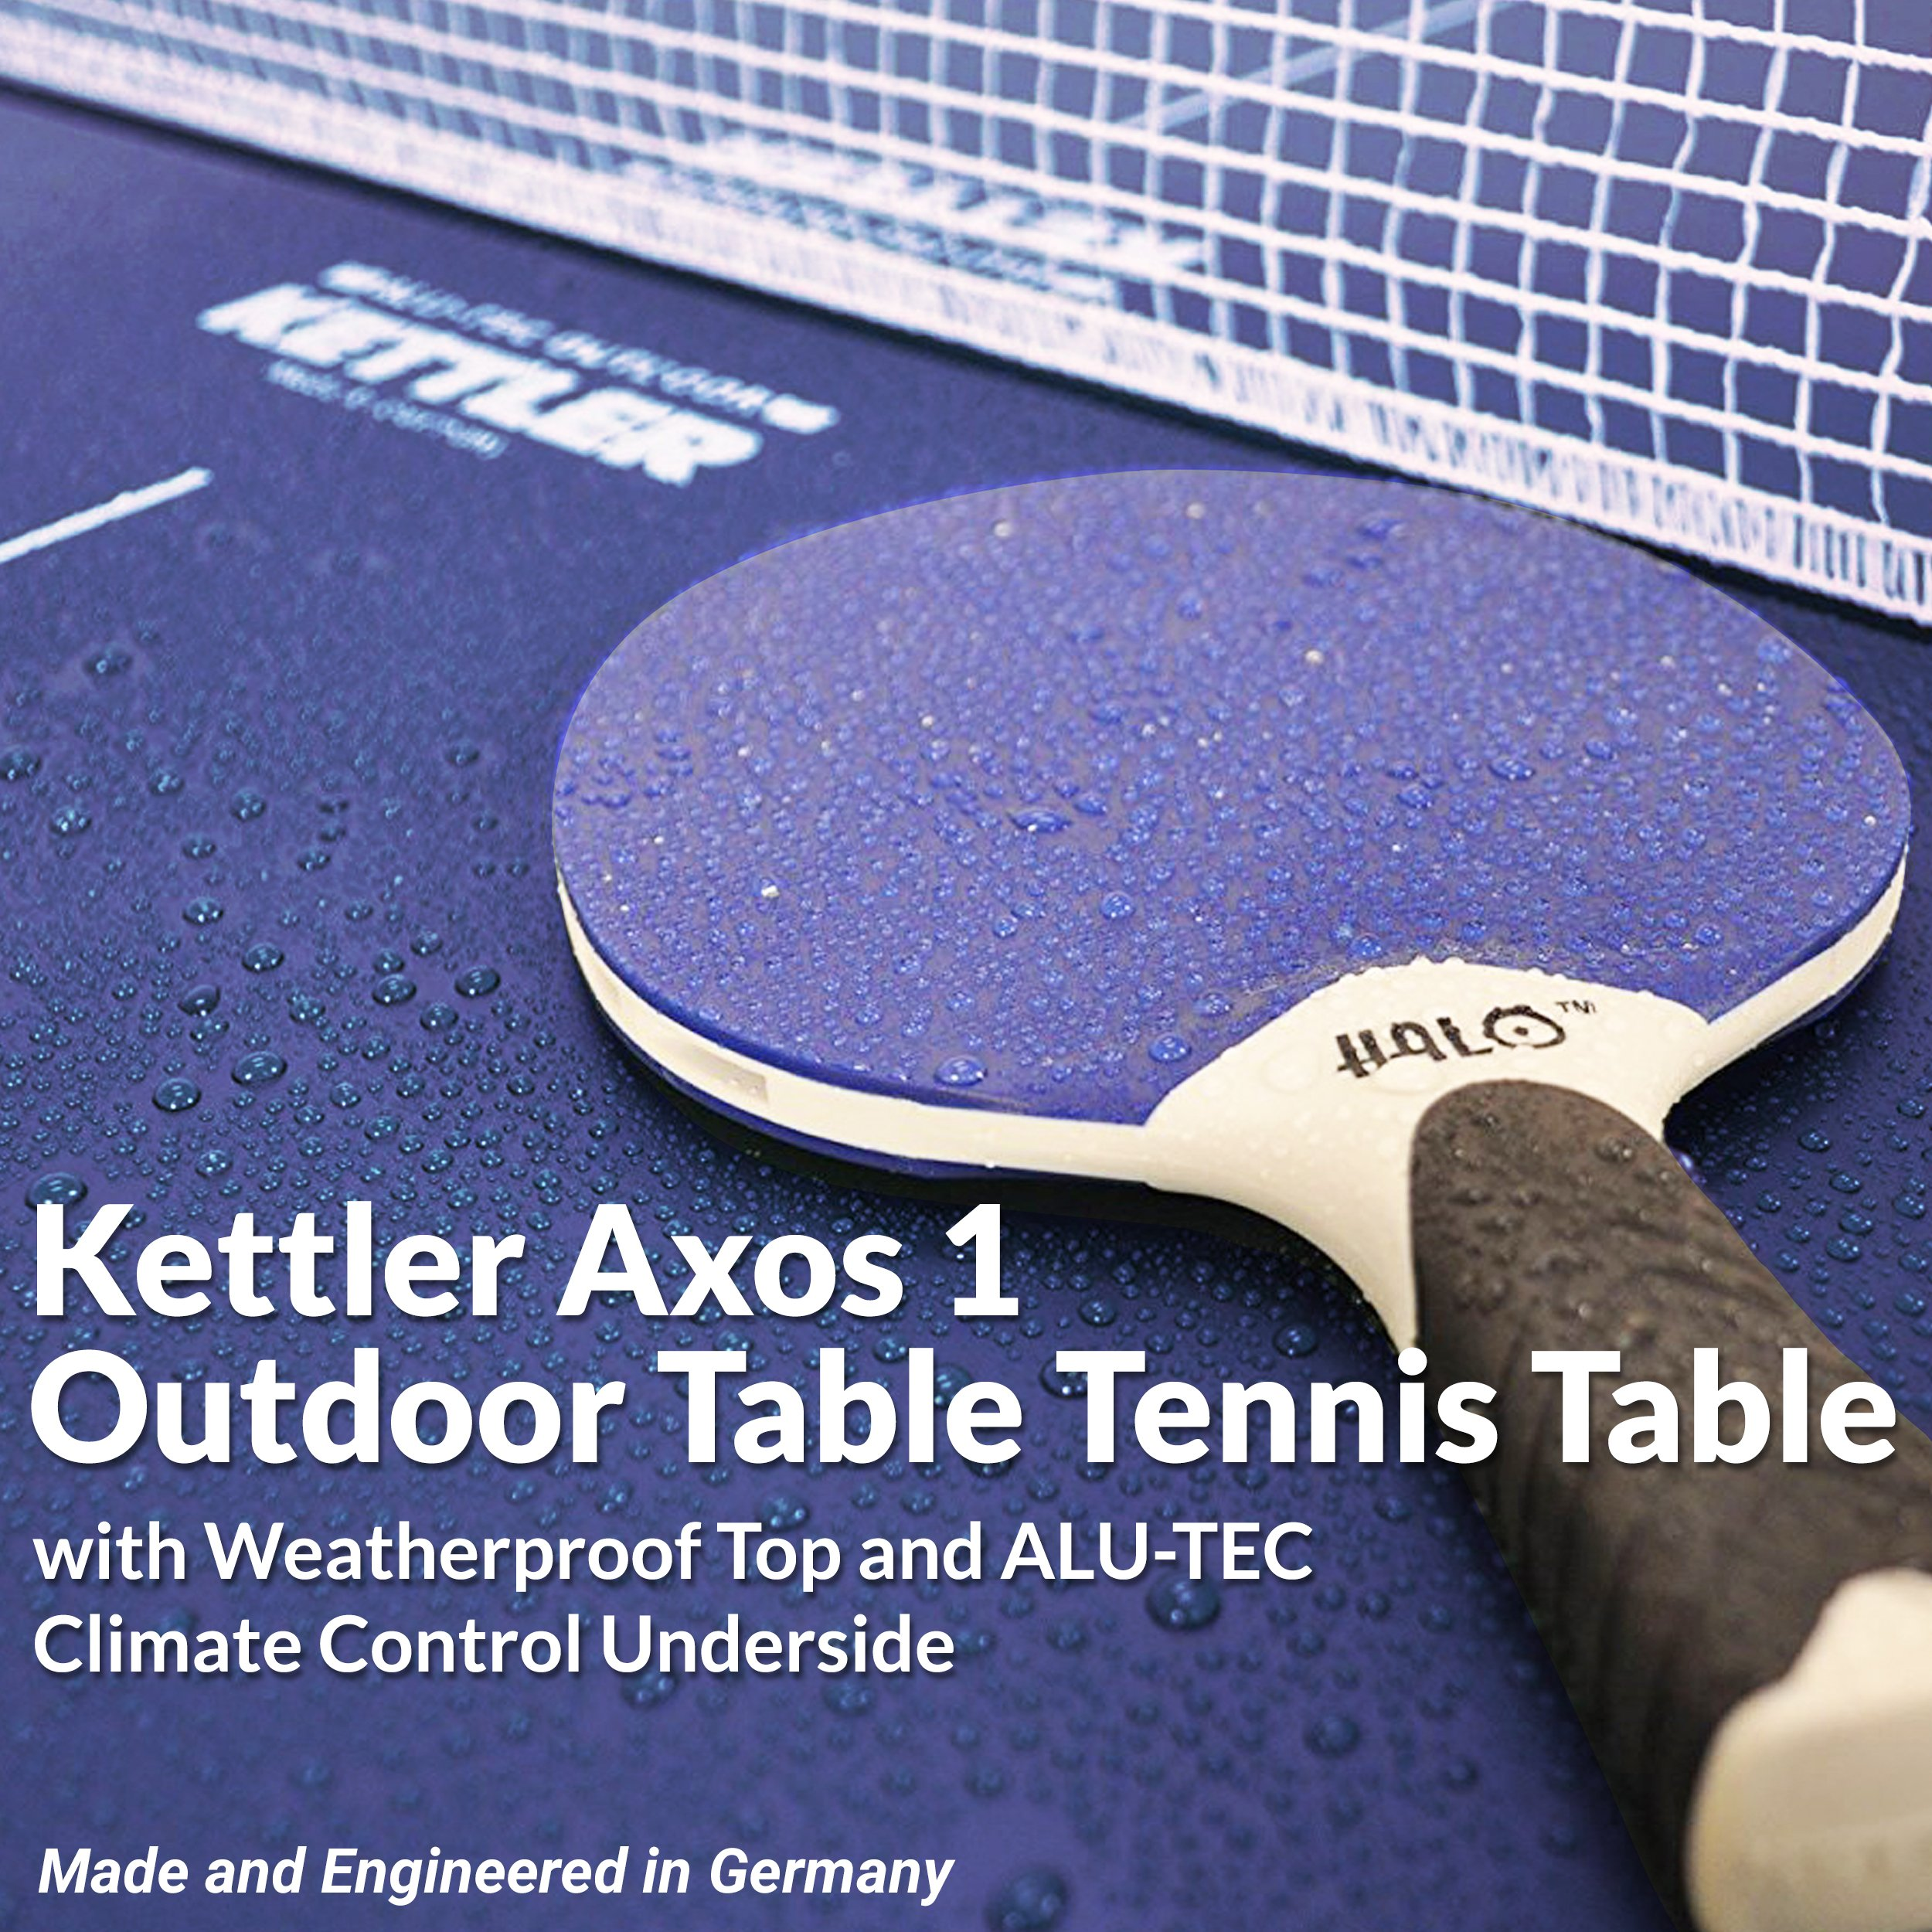 Kettler Outdoor Table Tennis Table - Axos 1 with Outdoor Accessory Bundle by Kettler (Image #3)